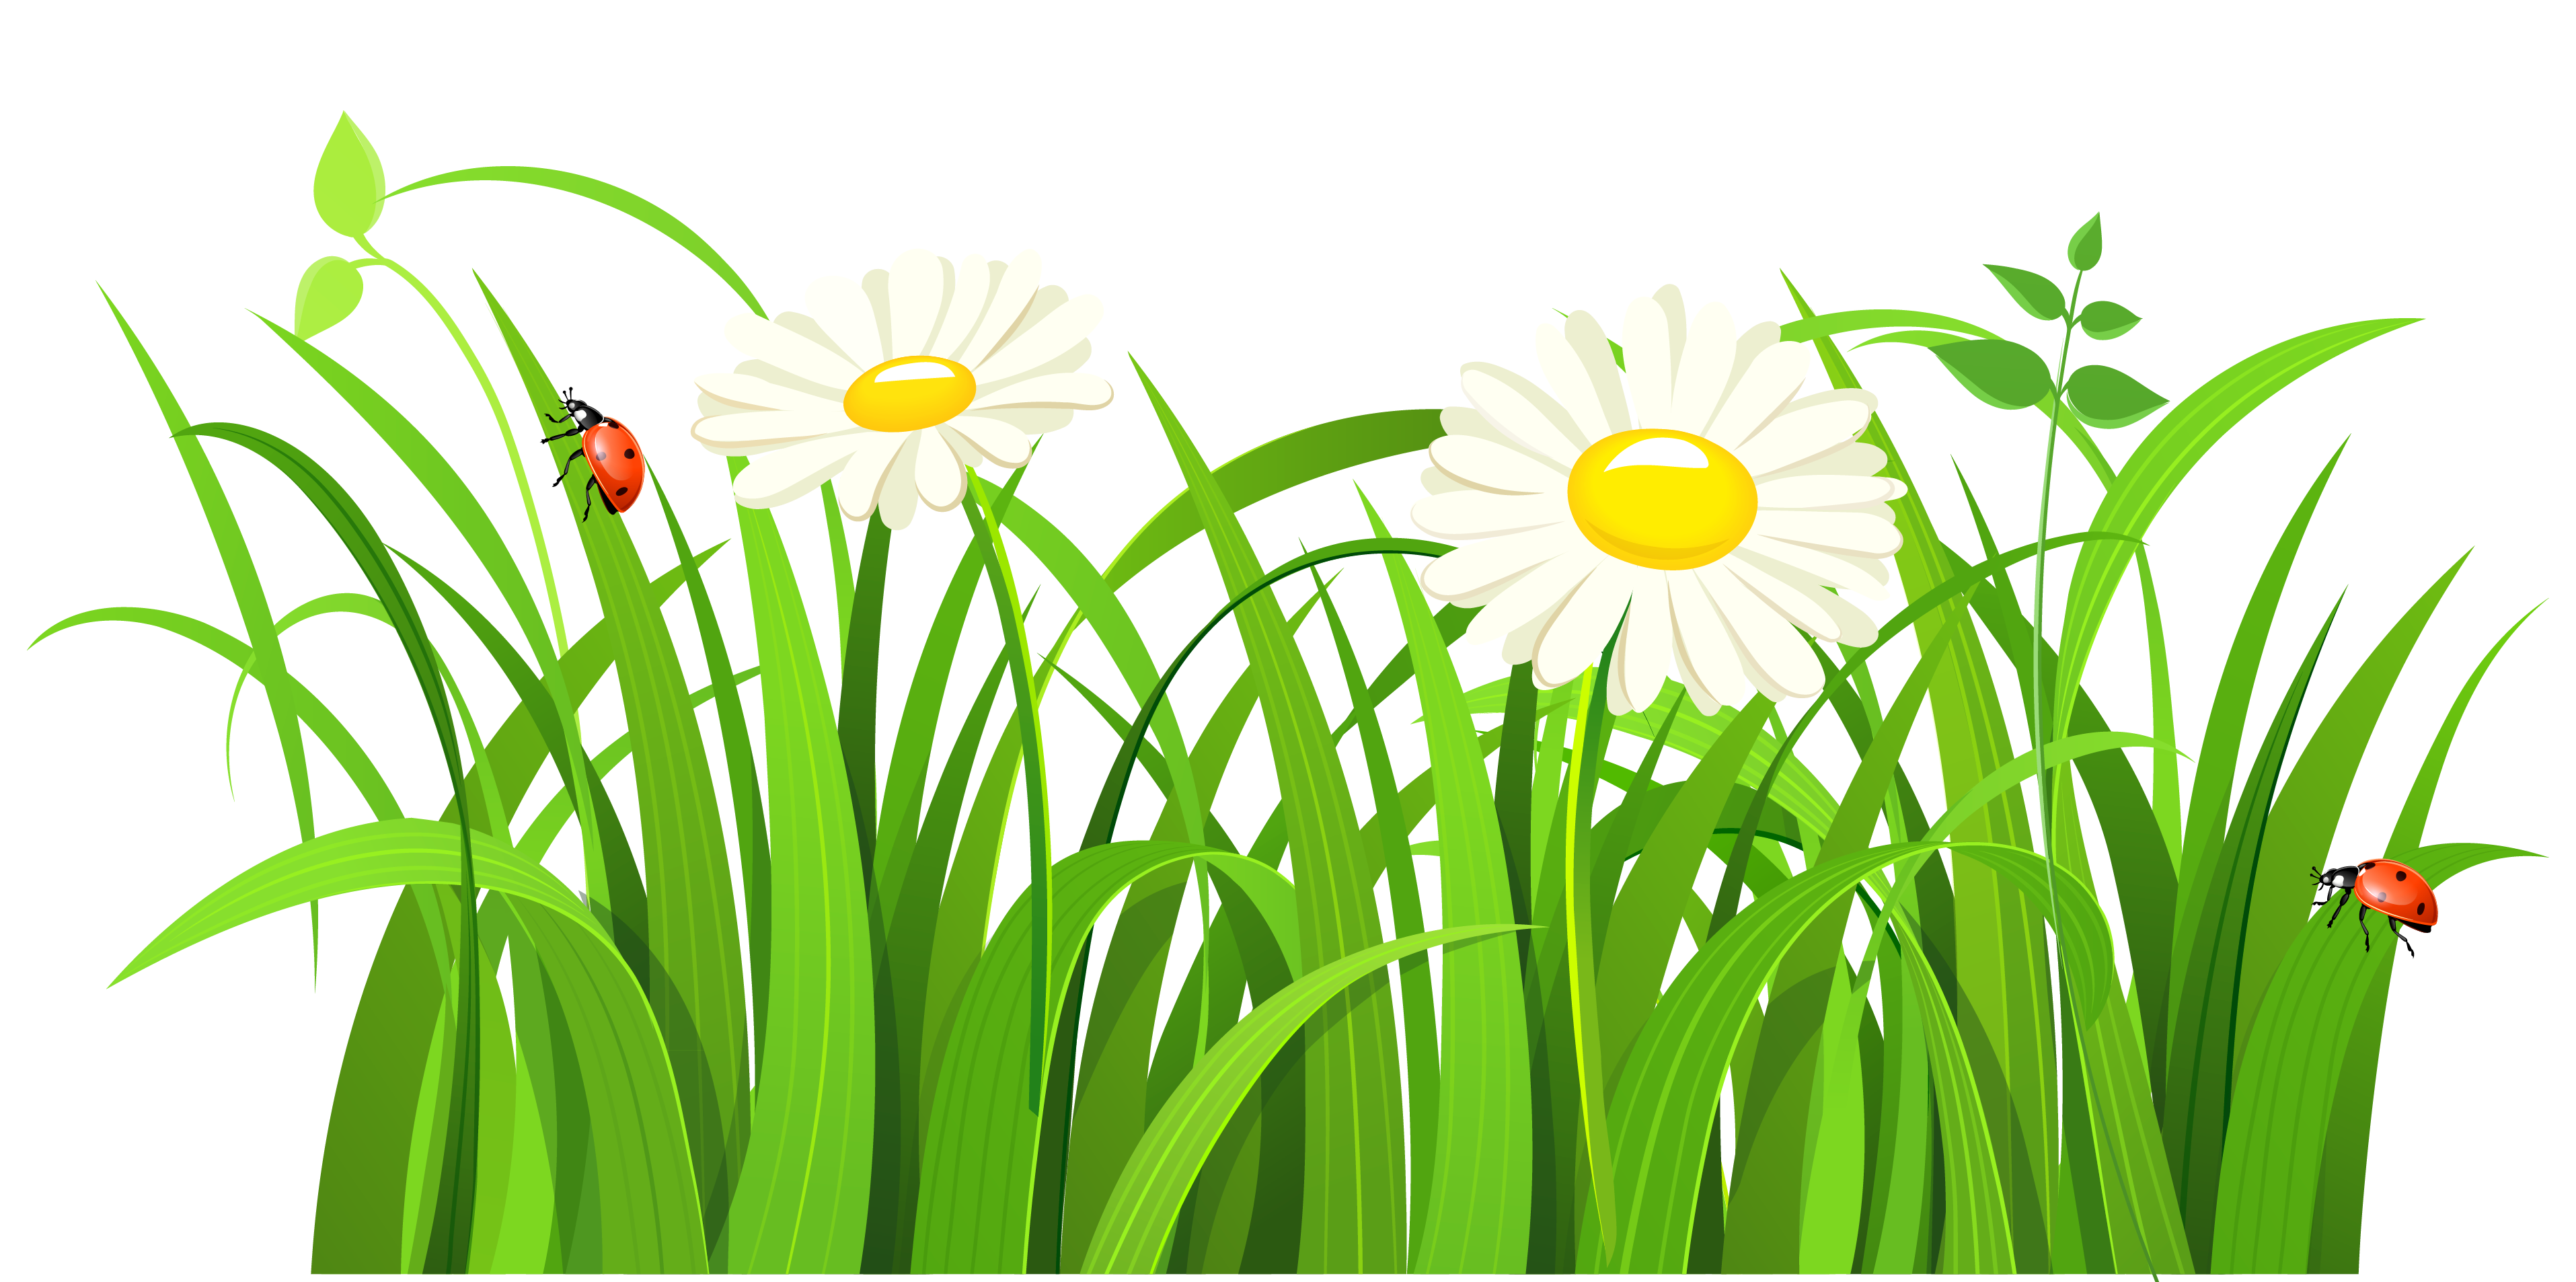 image library stock Grass with daisies and. Lawn clipart quehaceres.